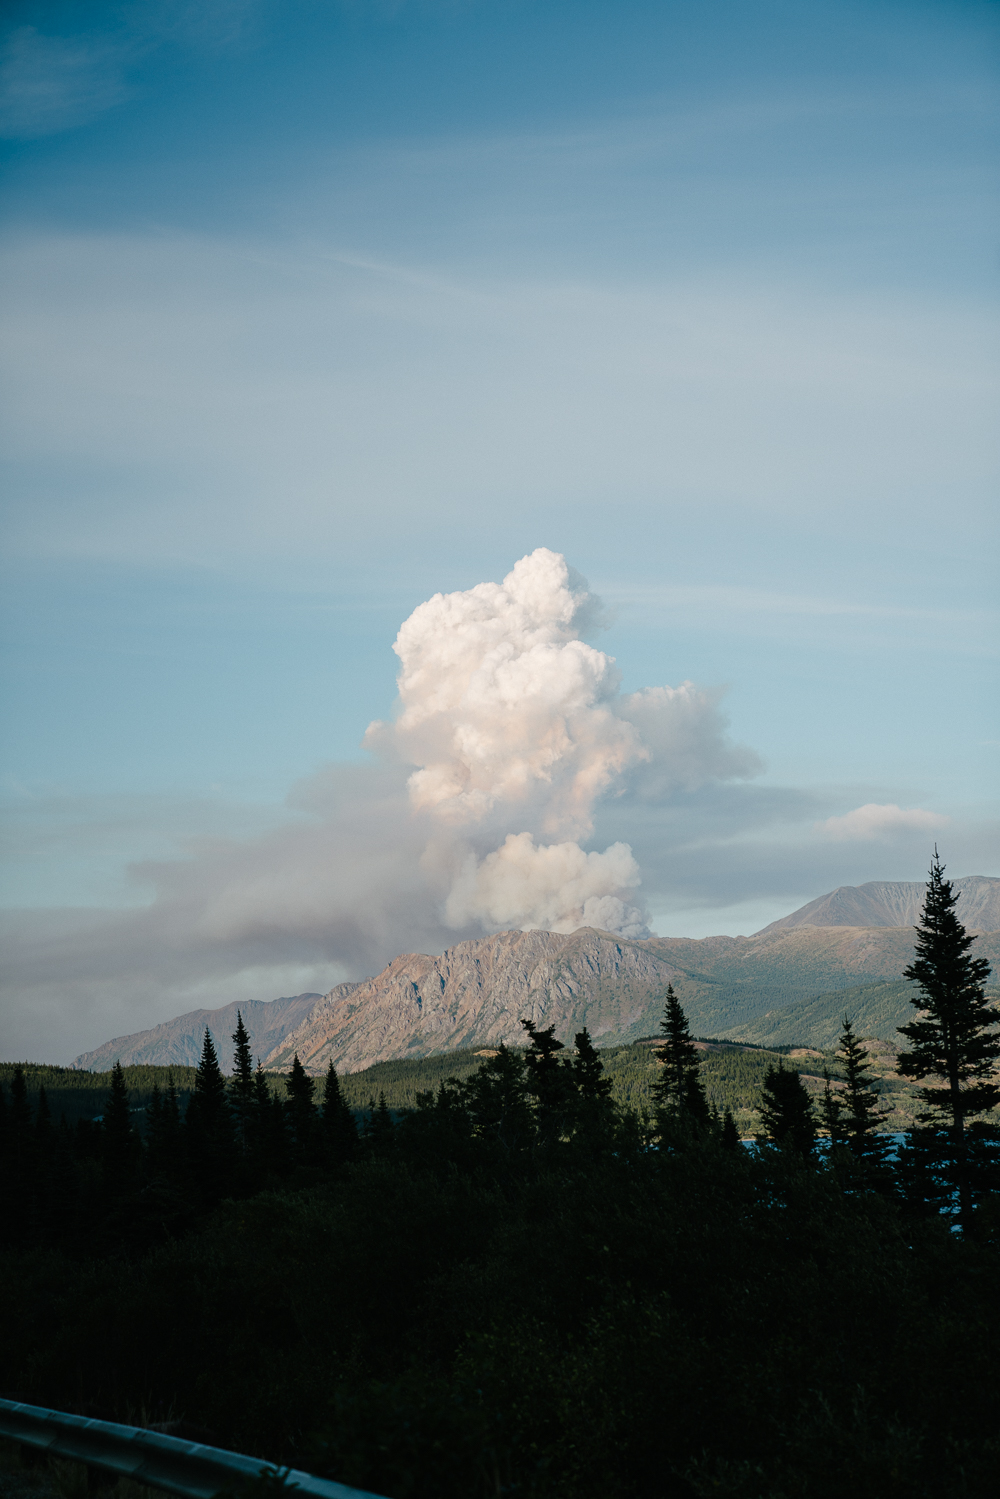 Coming over the White Pass, we caught a forest fire just beginning—it looked like a volcano had erupted!